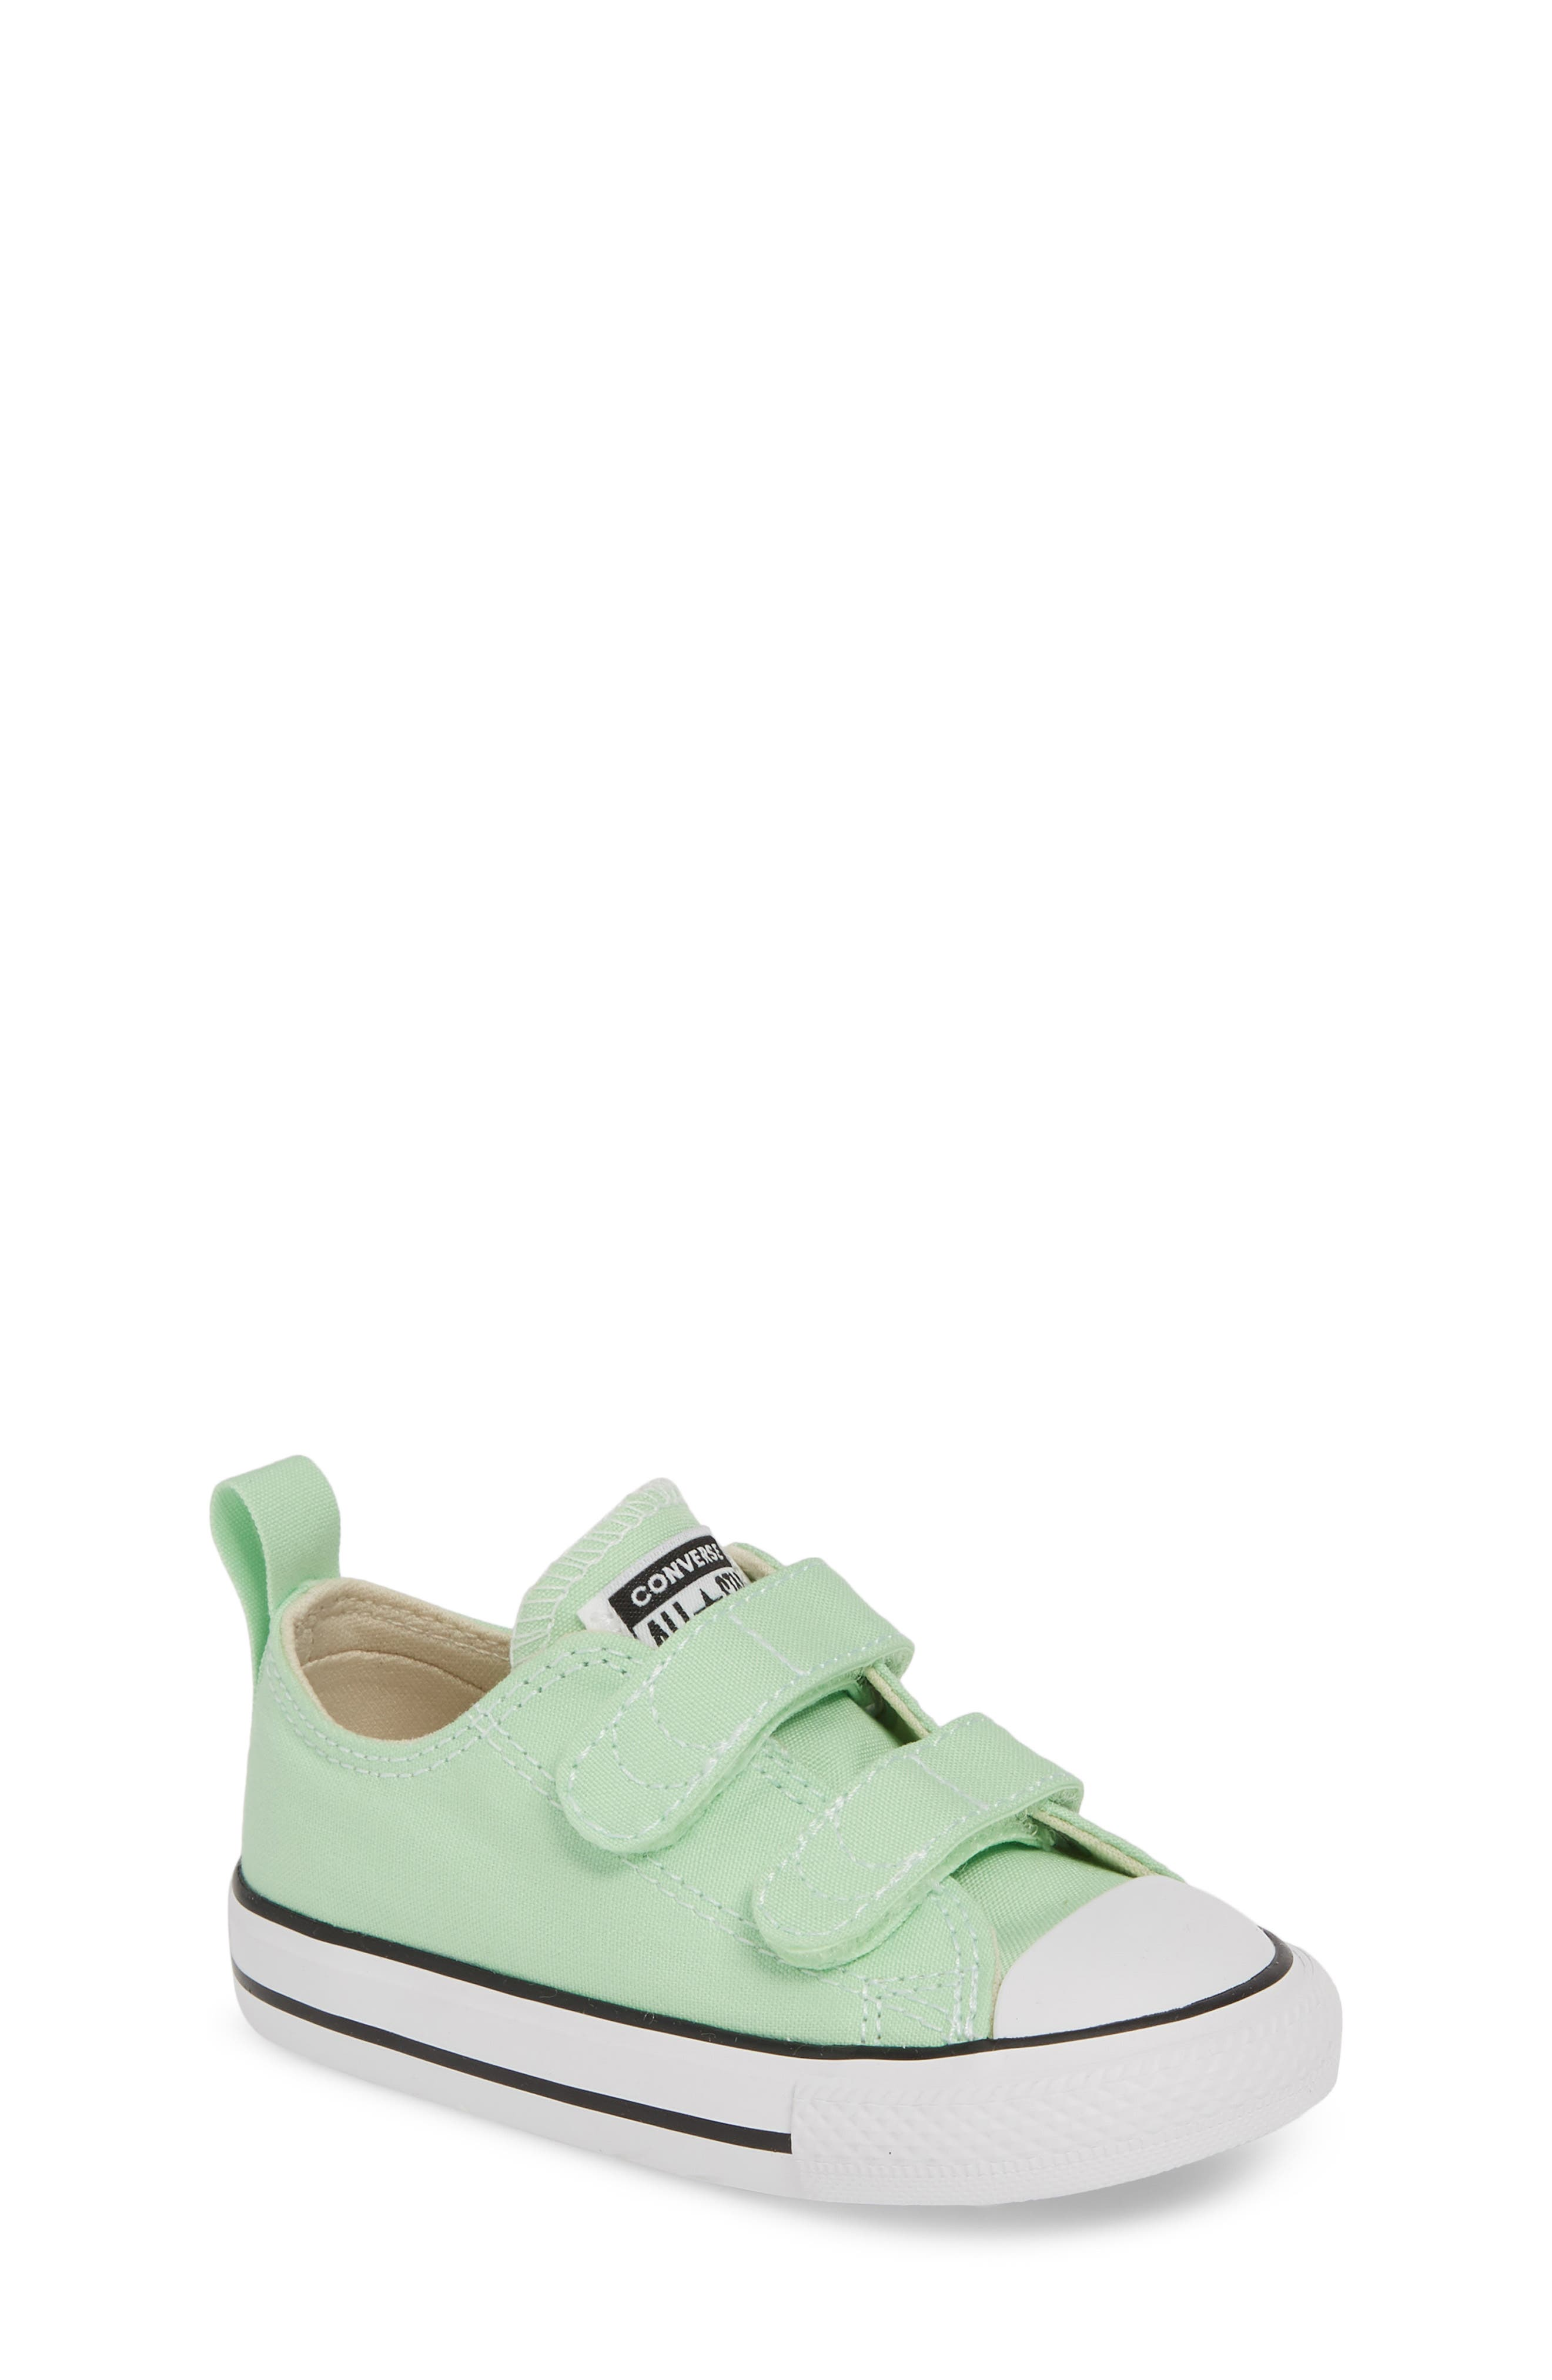 CONVERSE, Chuck Taylor<sup>®</sup> 'Double Strap' Sneaker, Main thumbnail 1, color, LT. APHID GREEN